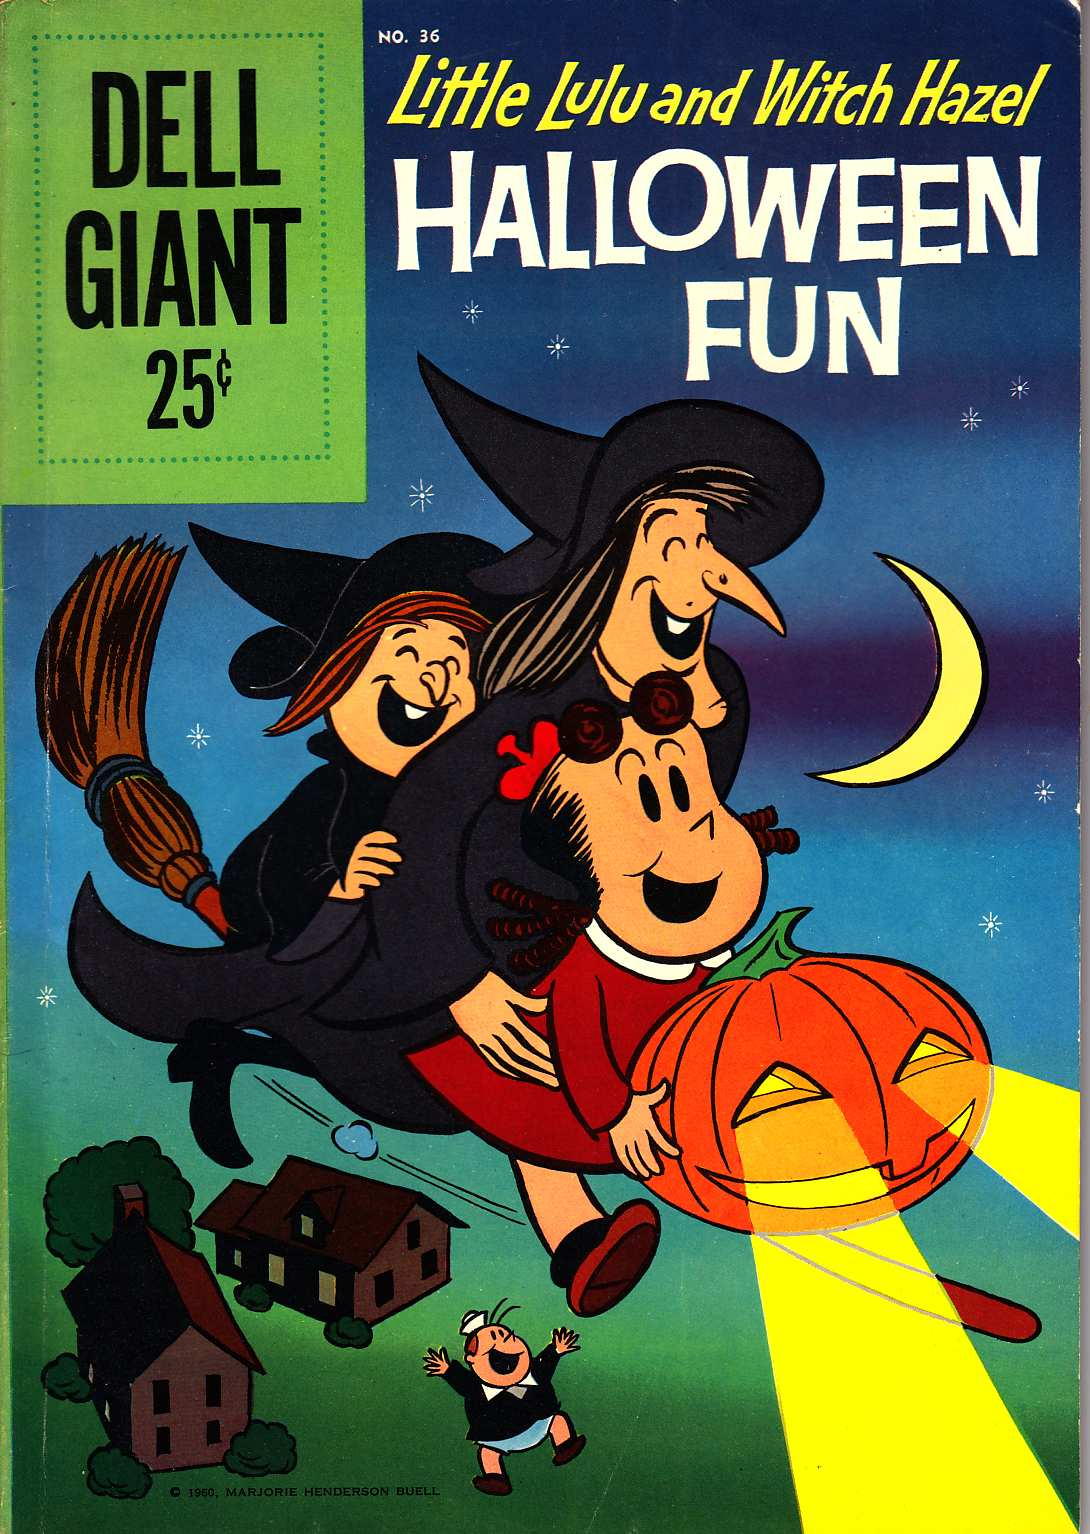 Dell Giant #36 (Lulu and Witch Hazel Halloween Fun) [Dell Comic]_THUMBNAIL